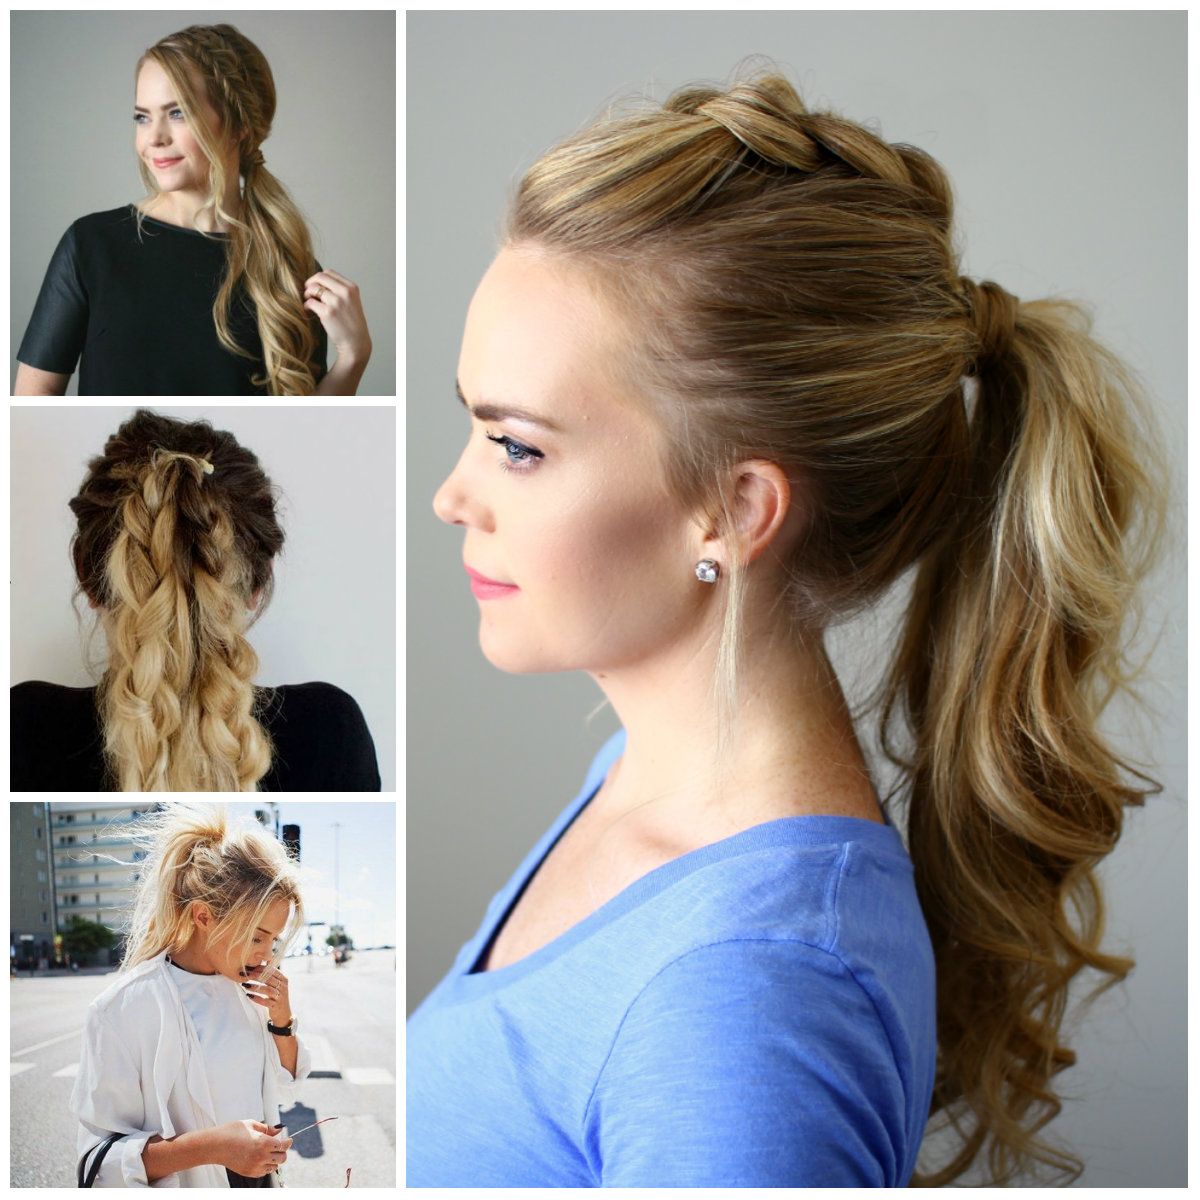 Hairstyle Ponytail : Messy Ponytail Hairstyles 2016 Haircuts, Hairstyles and Hair Colors ...